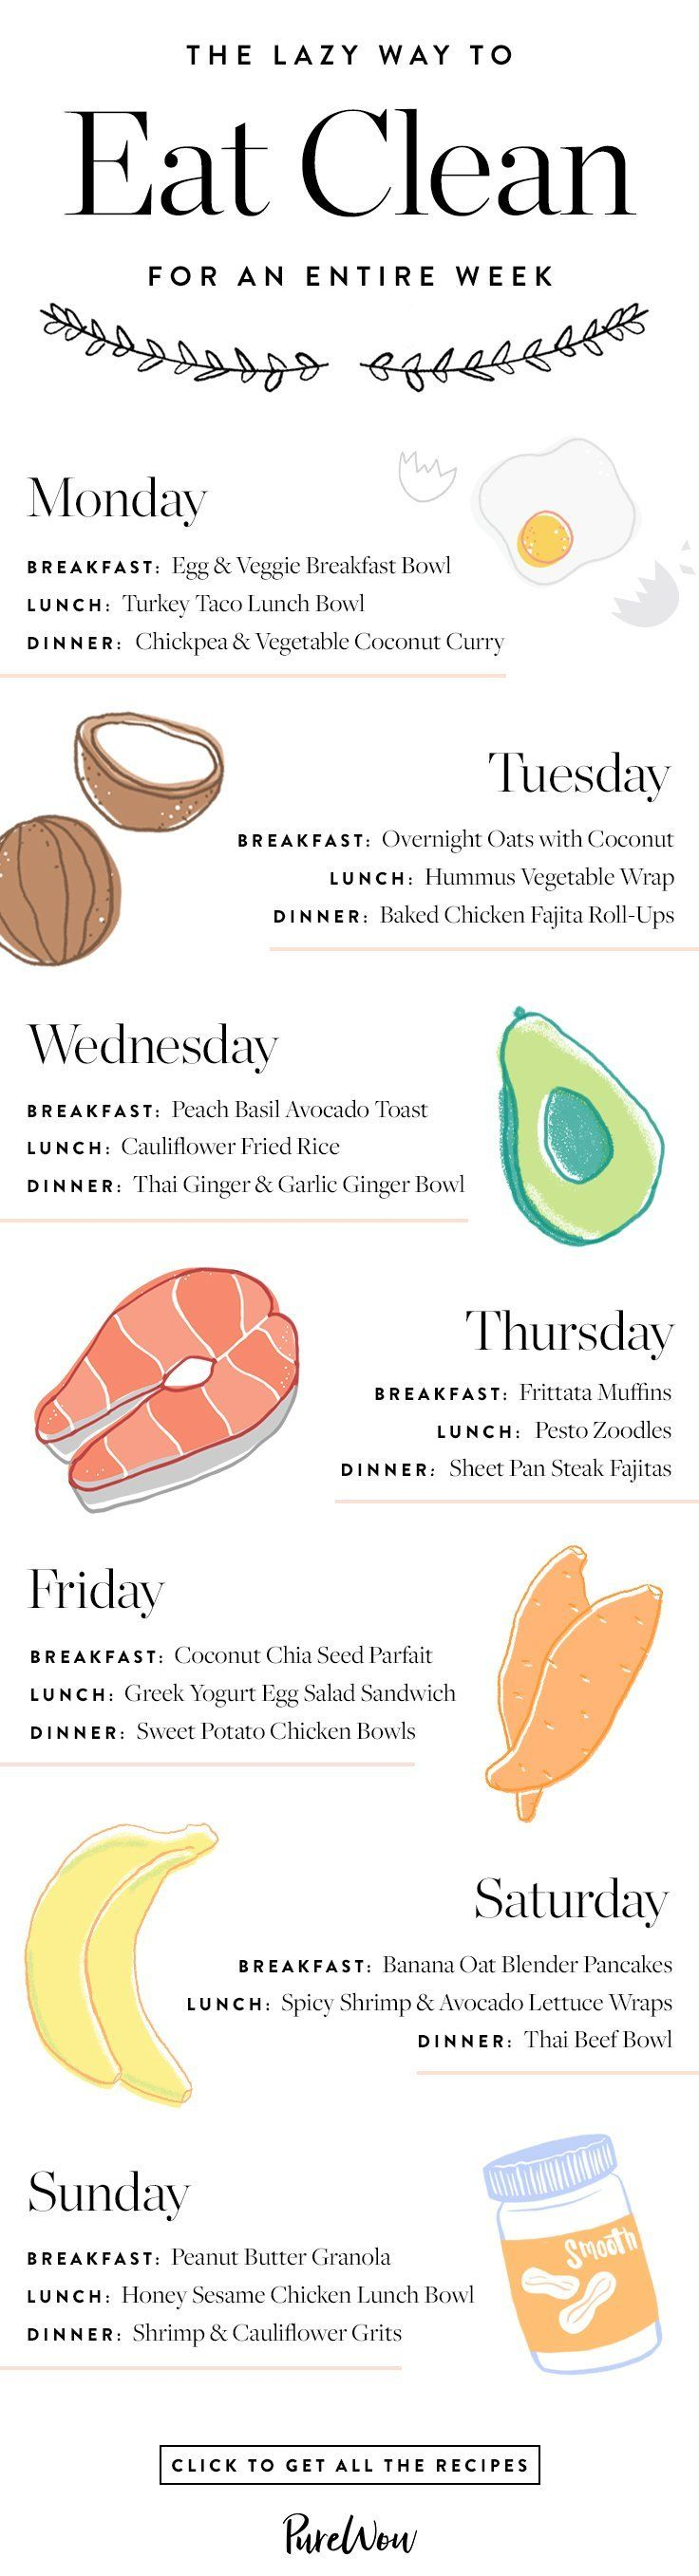 Looking for a lazy way to eat clean? Save this easy, clean eating meal plan that will help you stay healthy all week long, and click to get each recipe. #mealplan #healthyrecipes #recipes #cleaneating #eatclean #healthy #infographic #mealprep #cleaneatingrecipes #guide